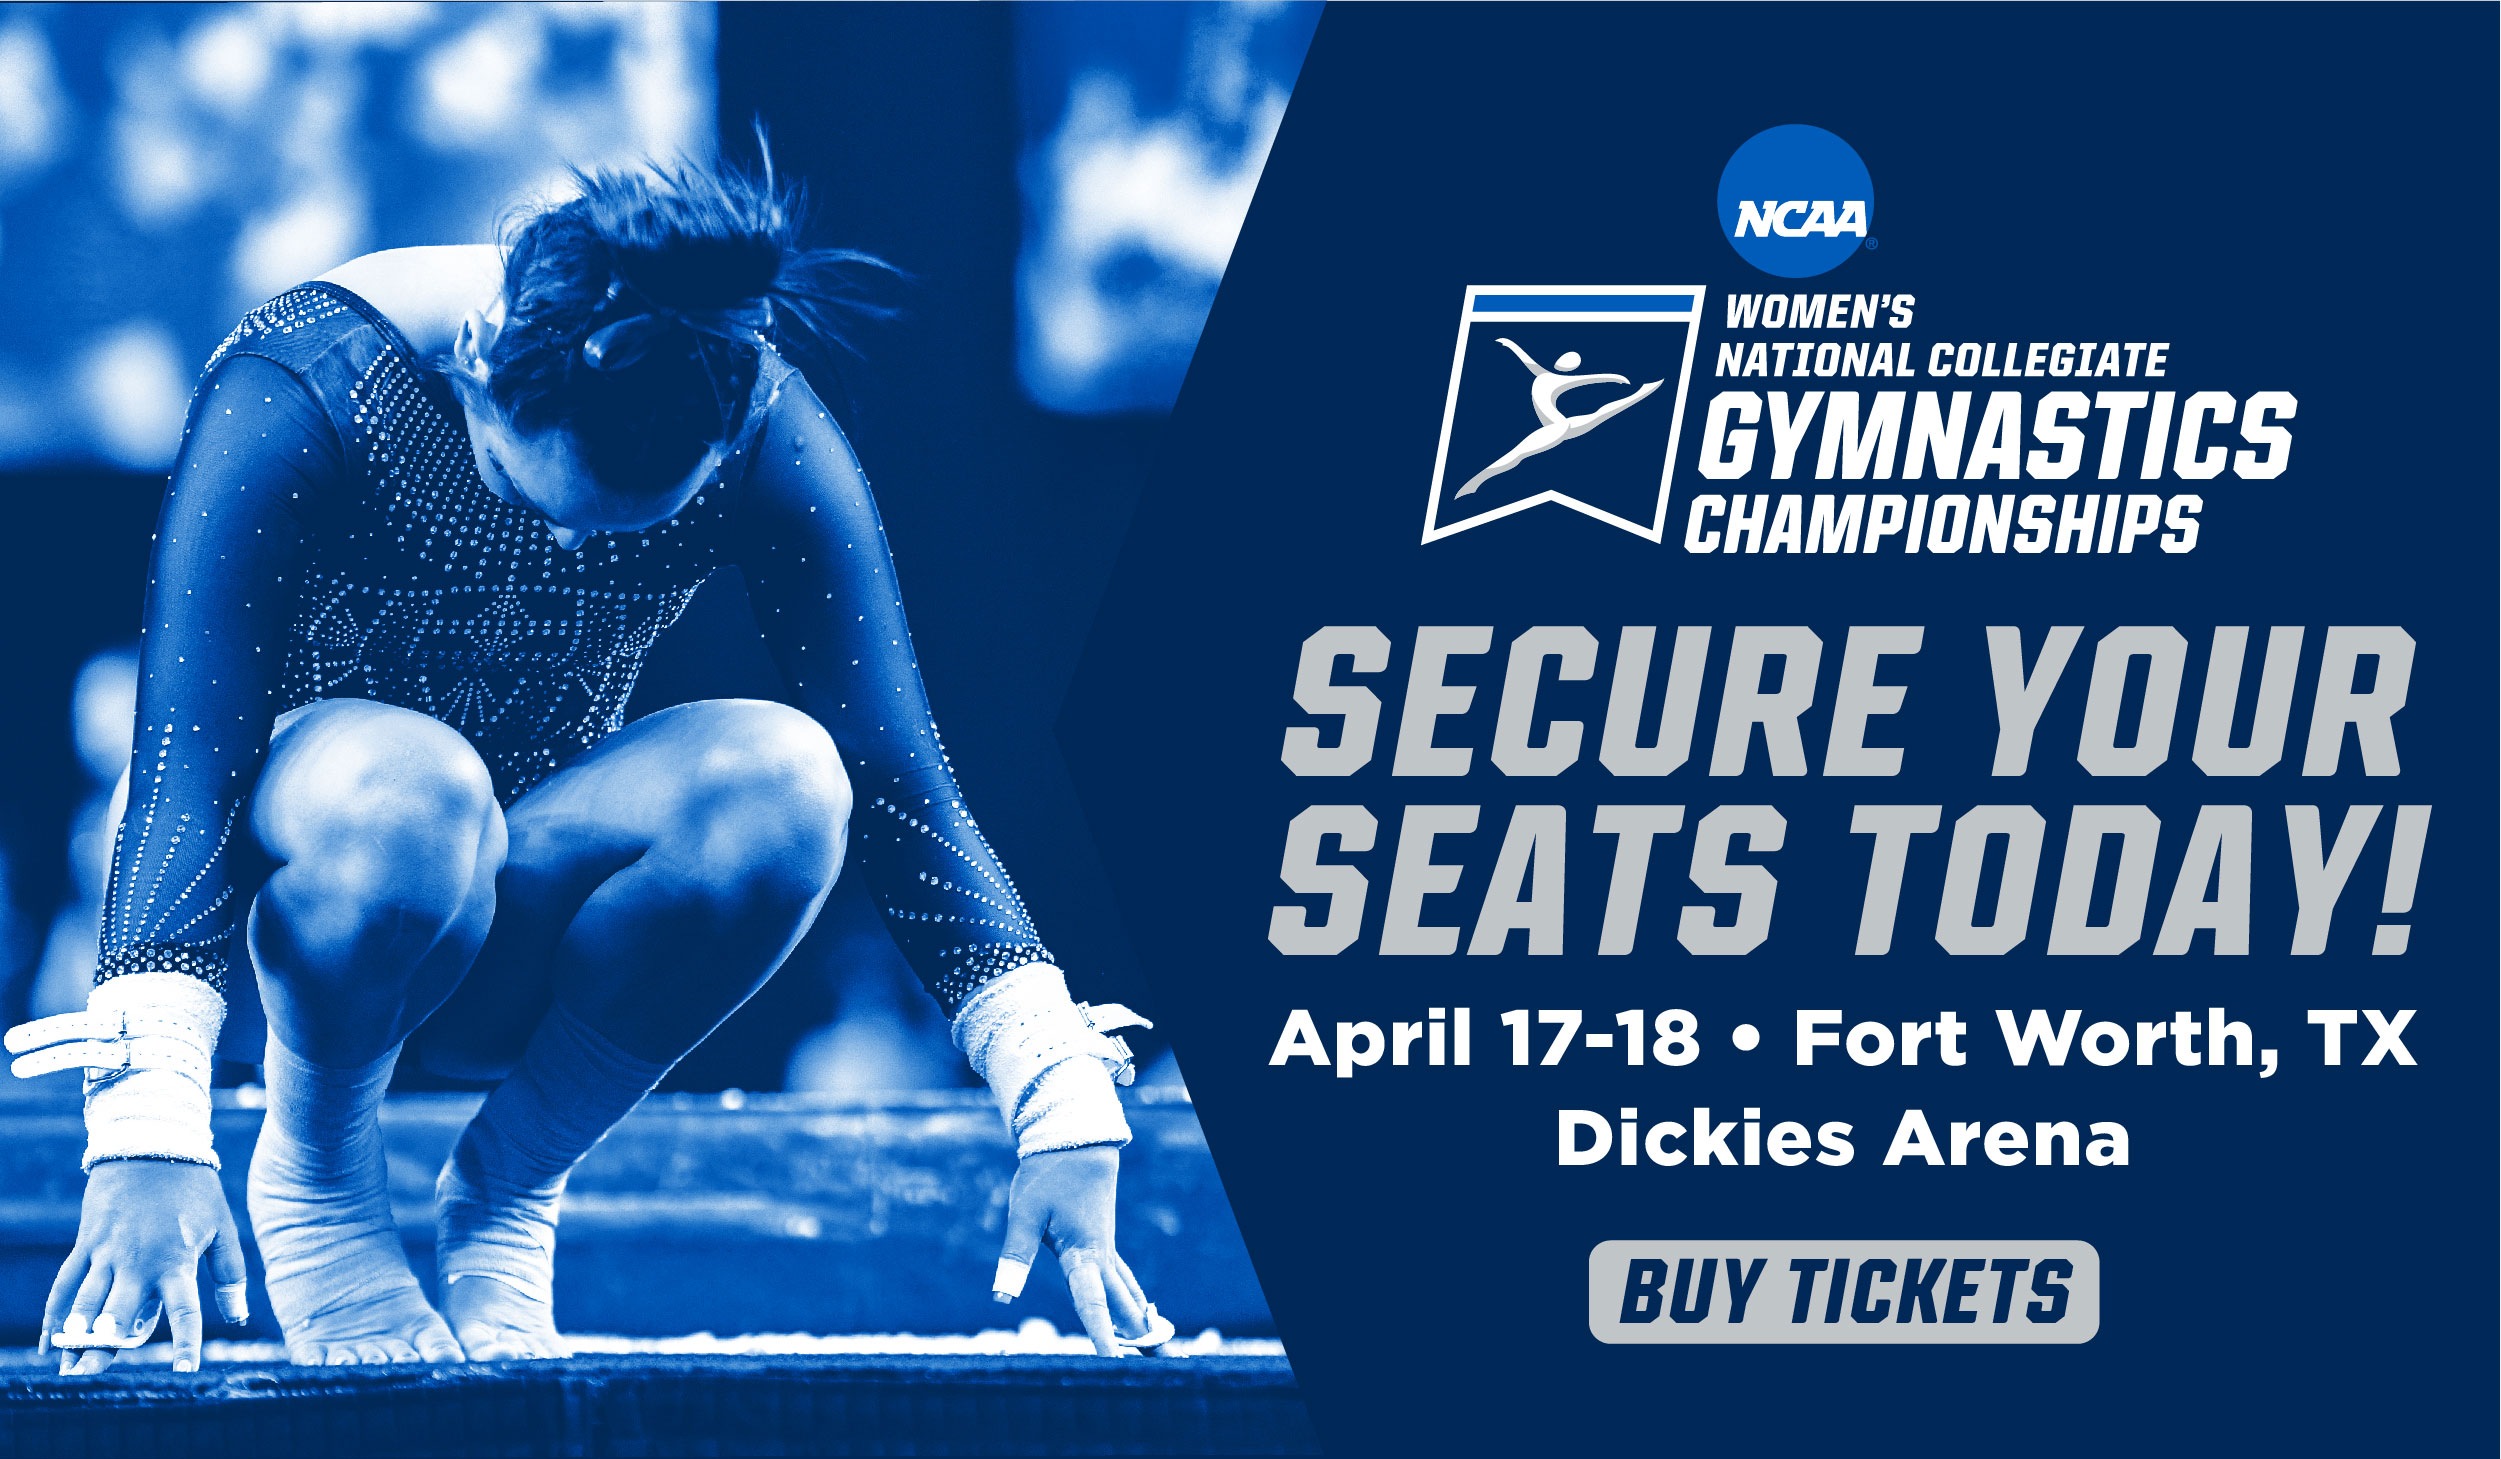 2020 NCAA Women's Gymnastics Championships - Event